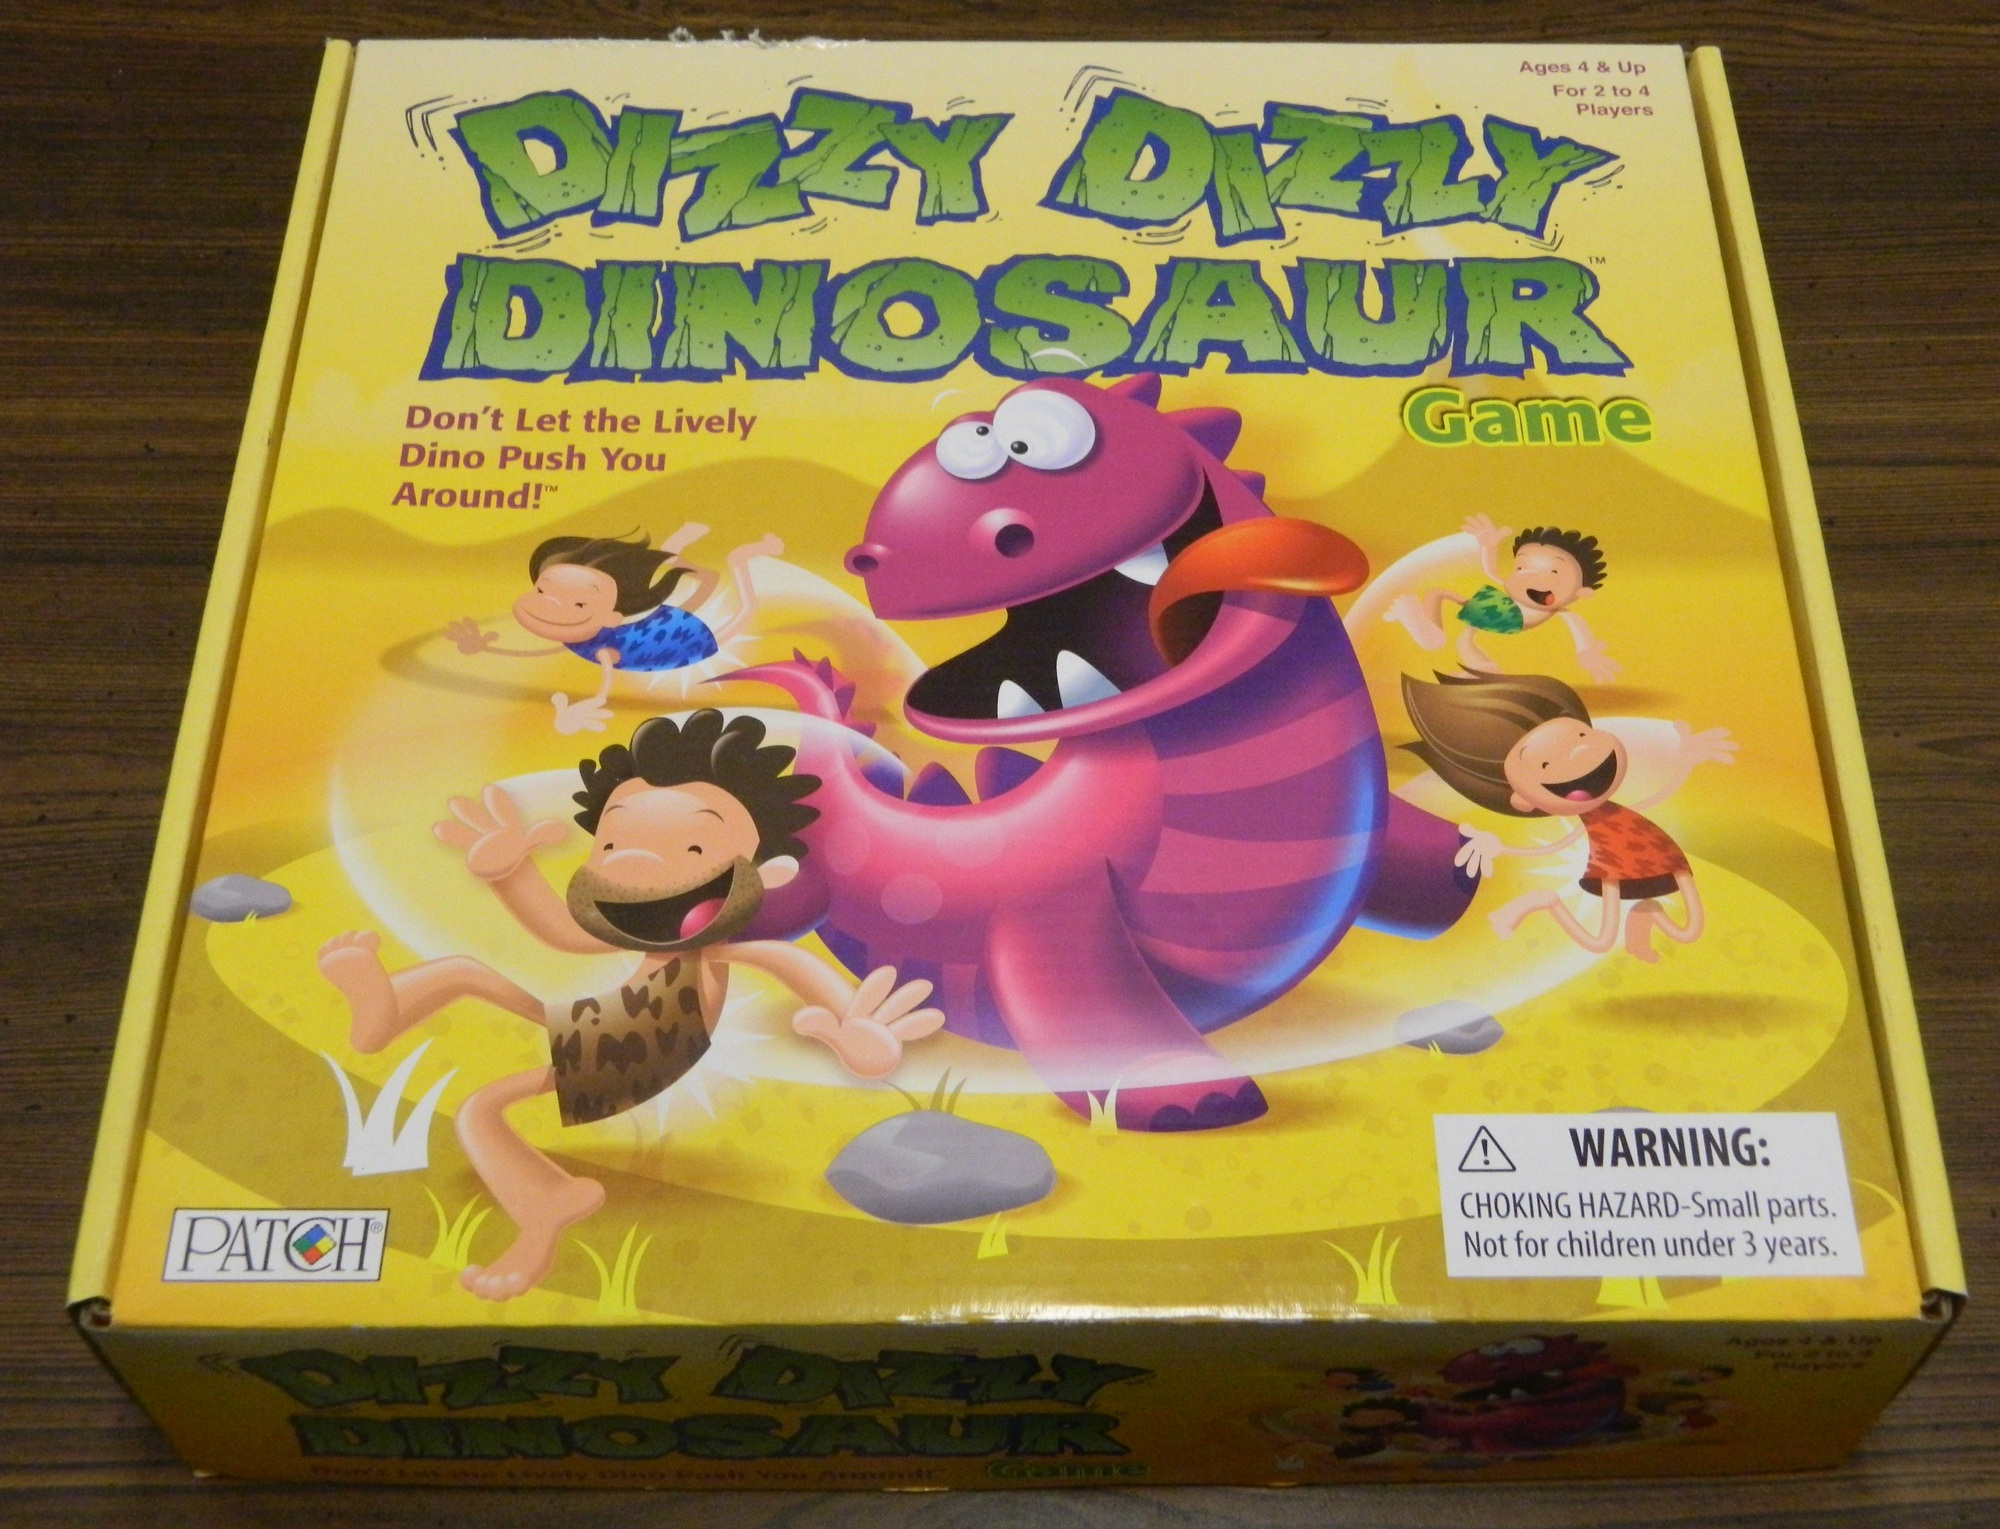 Box for Dizzy Dizzy Dinosaur